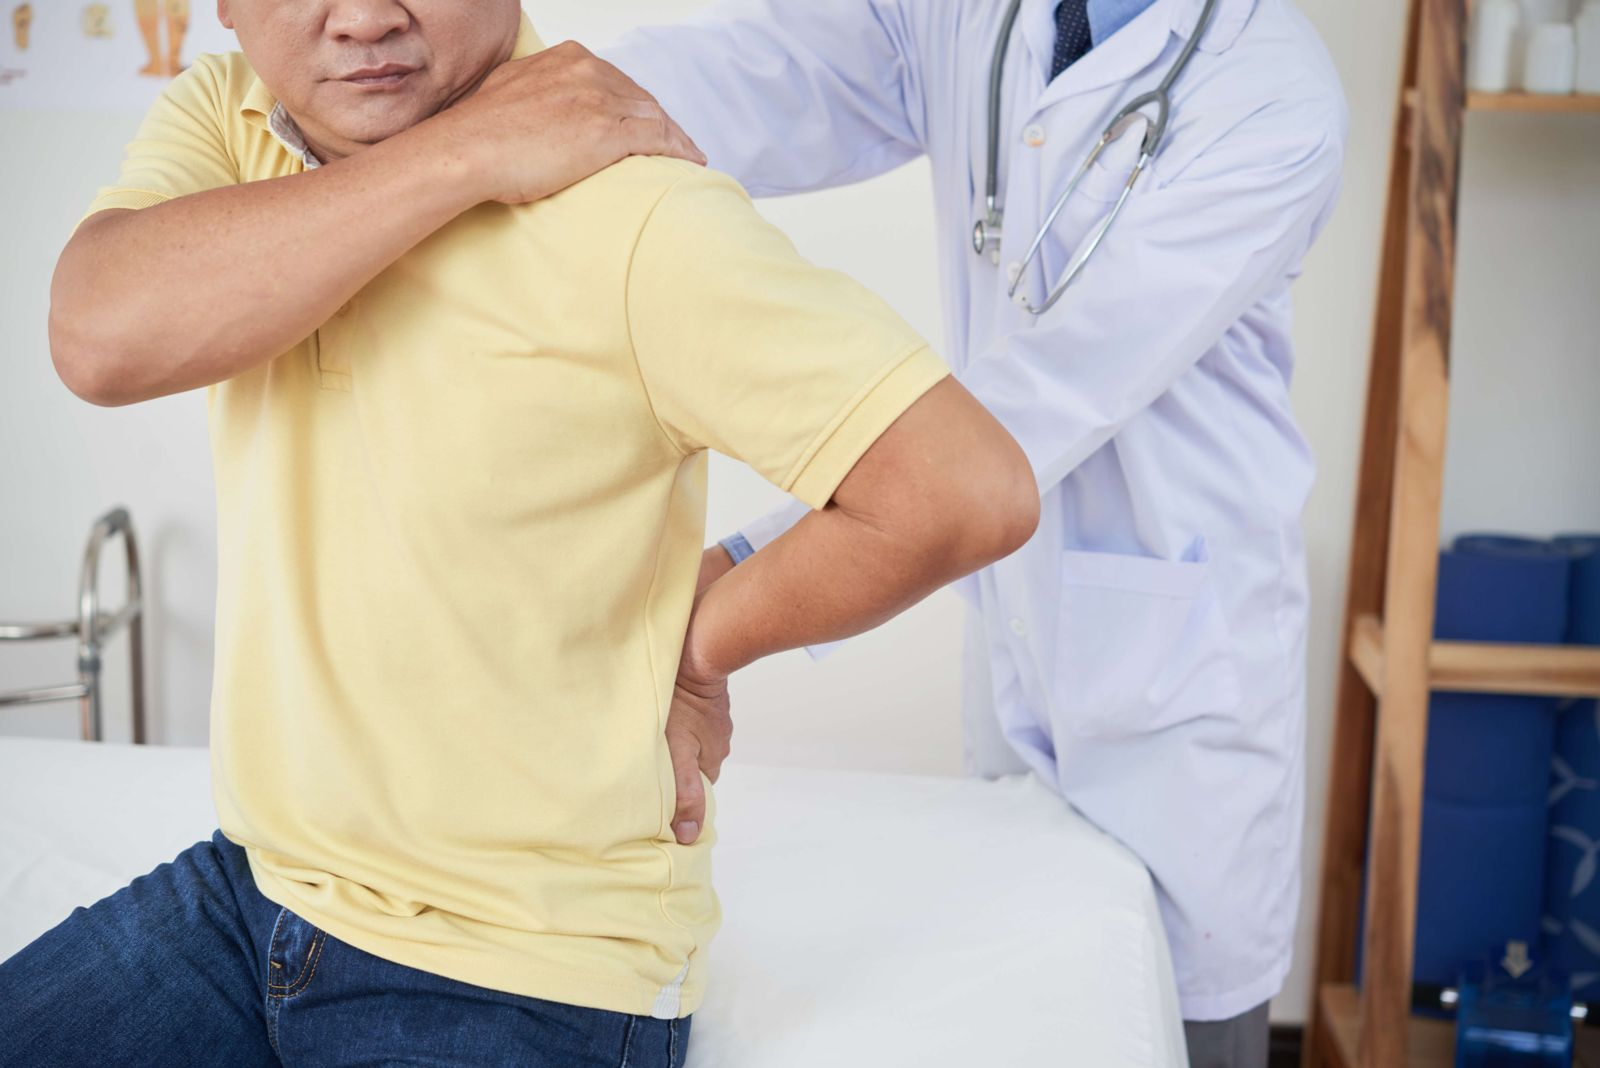 seek medical attention after a work injury